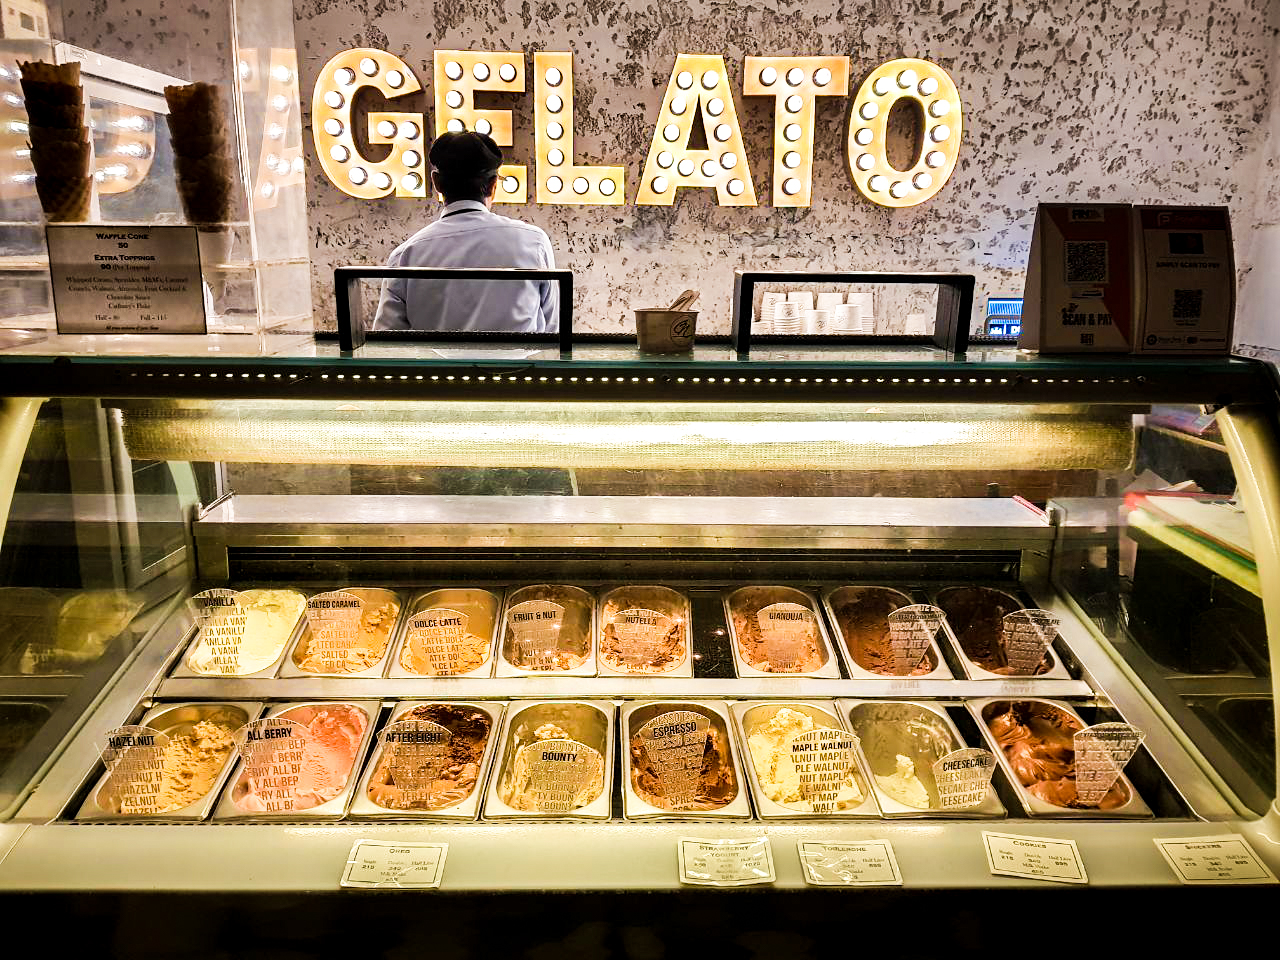 Gelato - Creamy, orgasmic ice cream that melts in your mouth. I had strawberry cheesecake and extra dark chocolate. And I died. Just writing about it now is making me want to go back and have more!